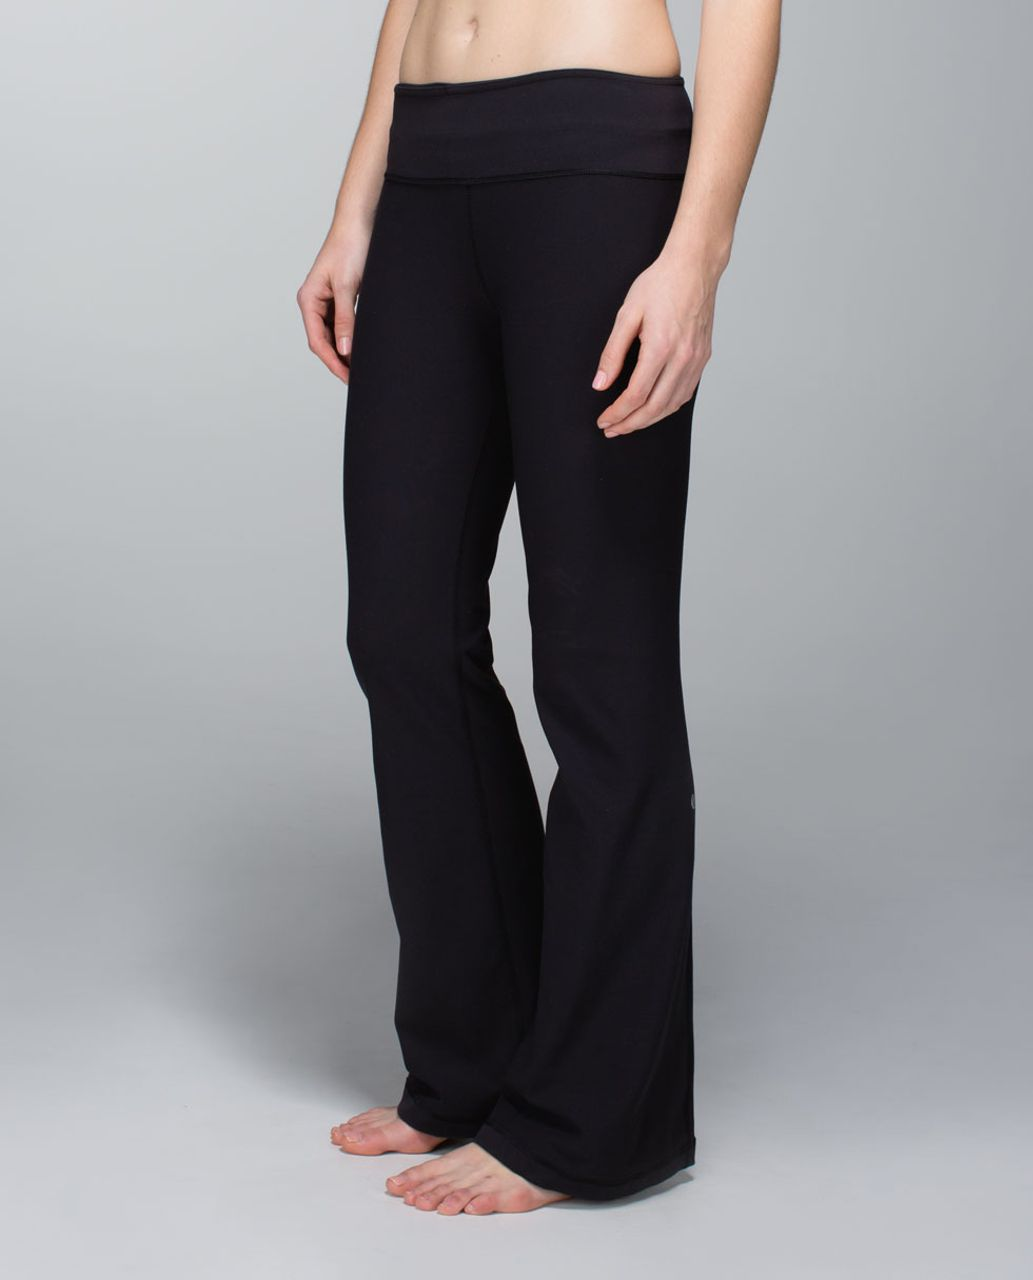 Lululemon Groove Pant *Slim (Tall) - Black